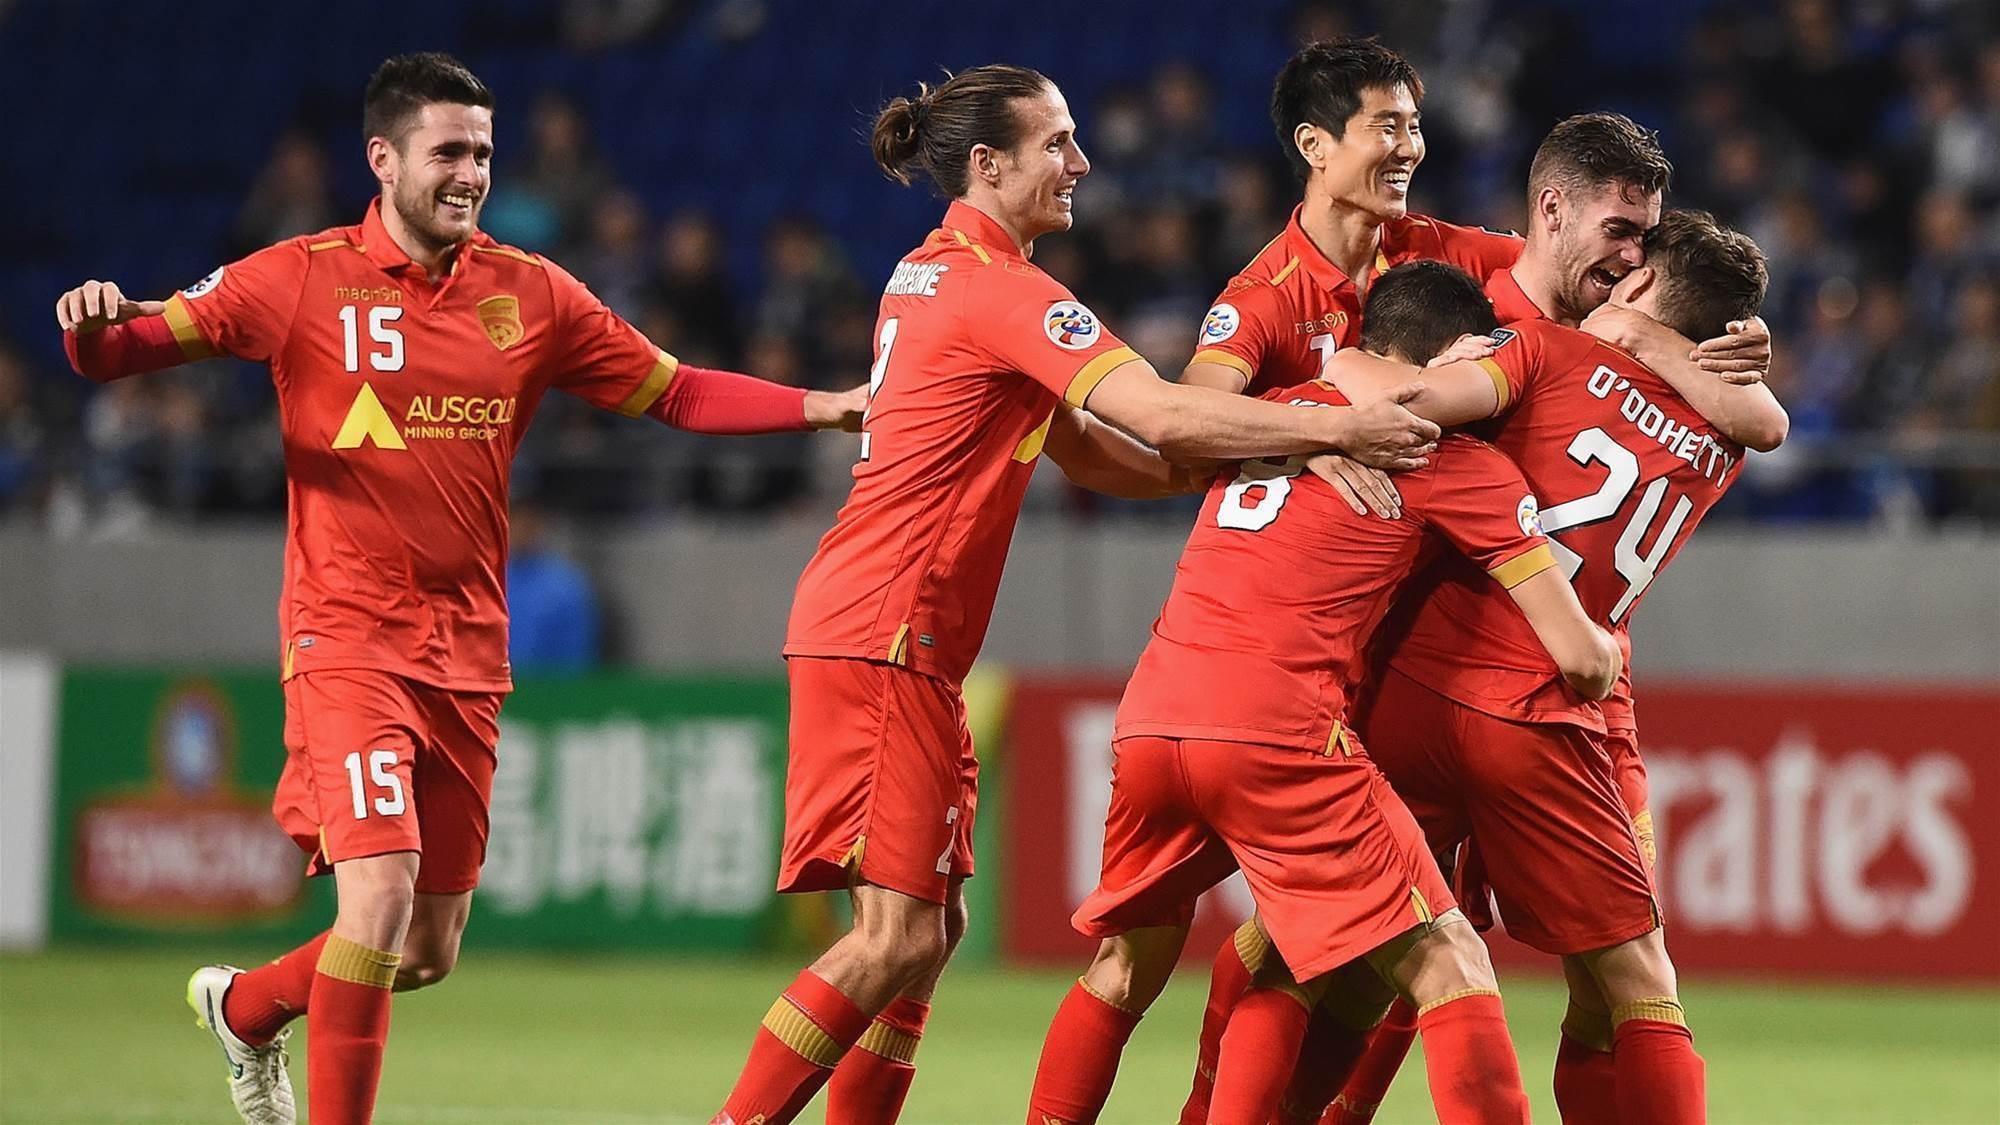 Reds draw with Gamba in epic fightback